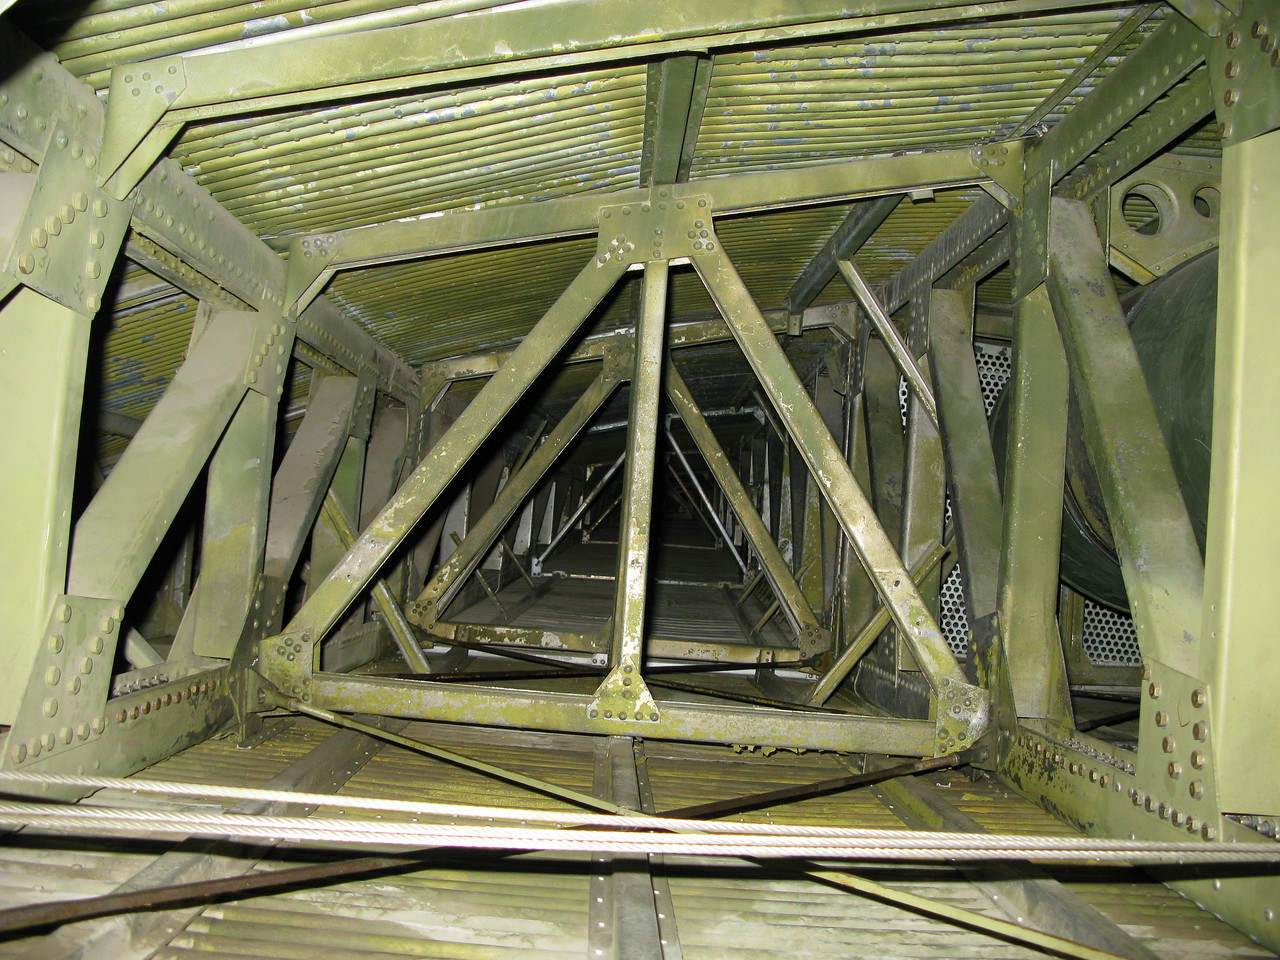 A view inside the wing box of N414H depicting the structural stringer supports.